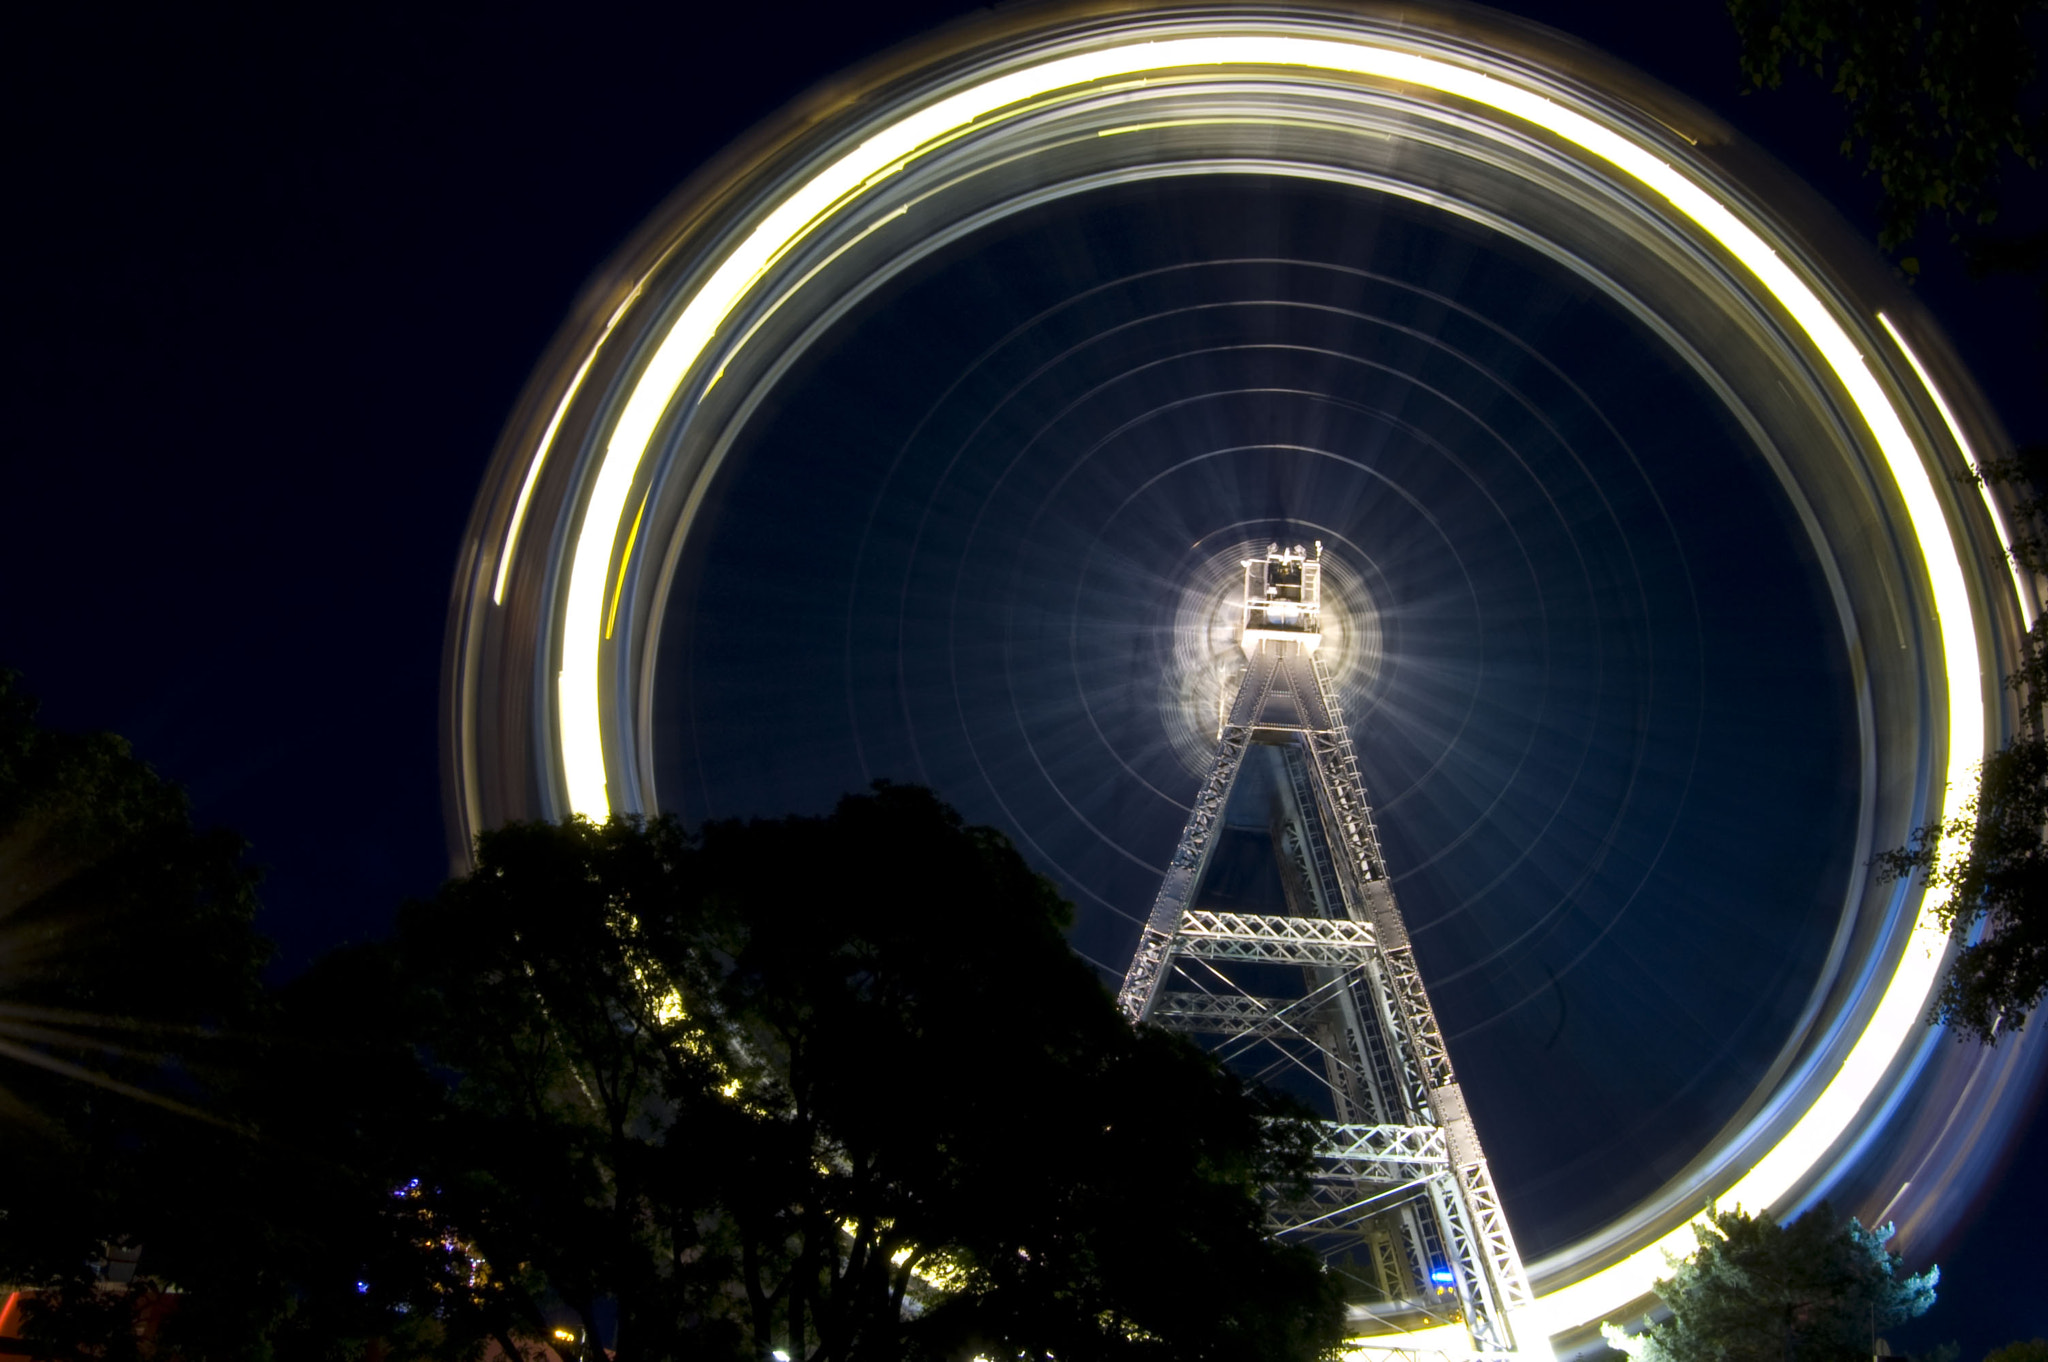 Photograph Wheel of Light by Adam Cain on 500px